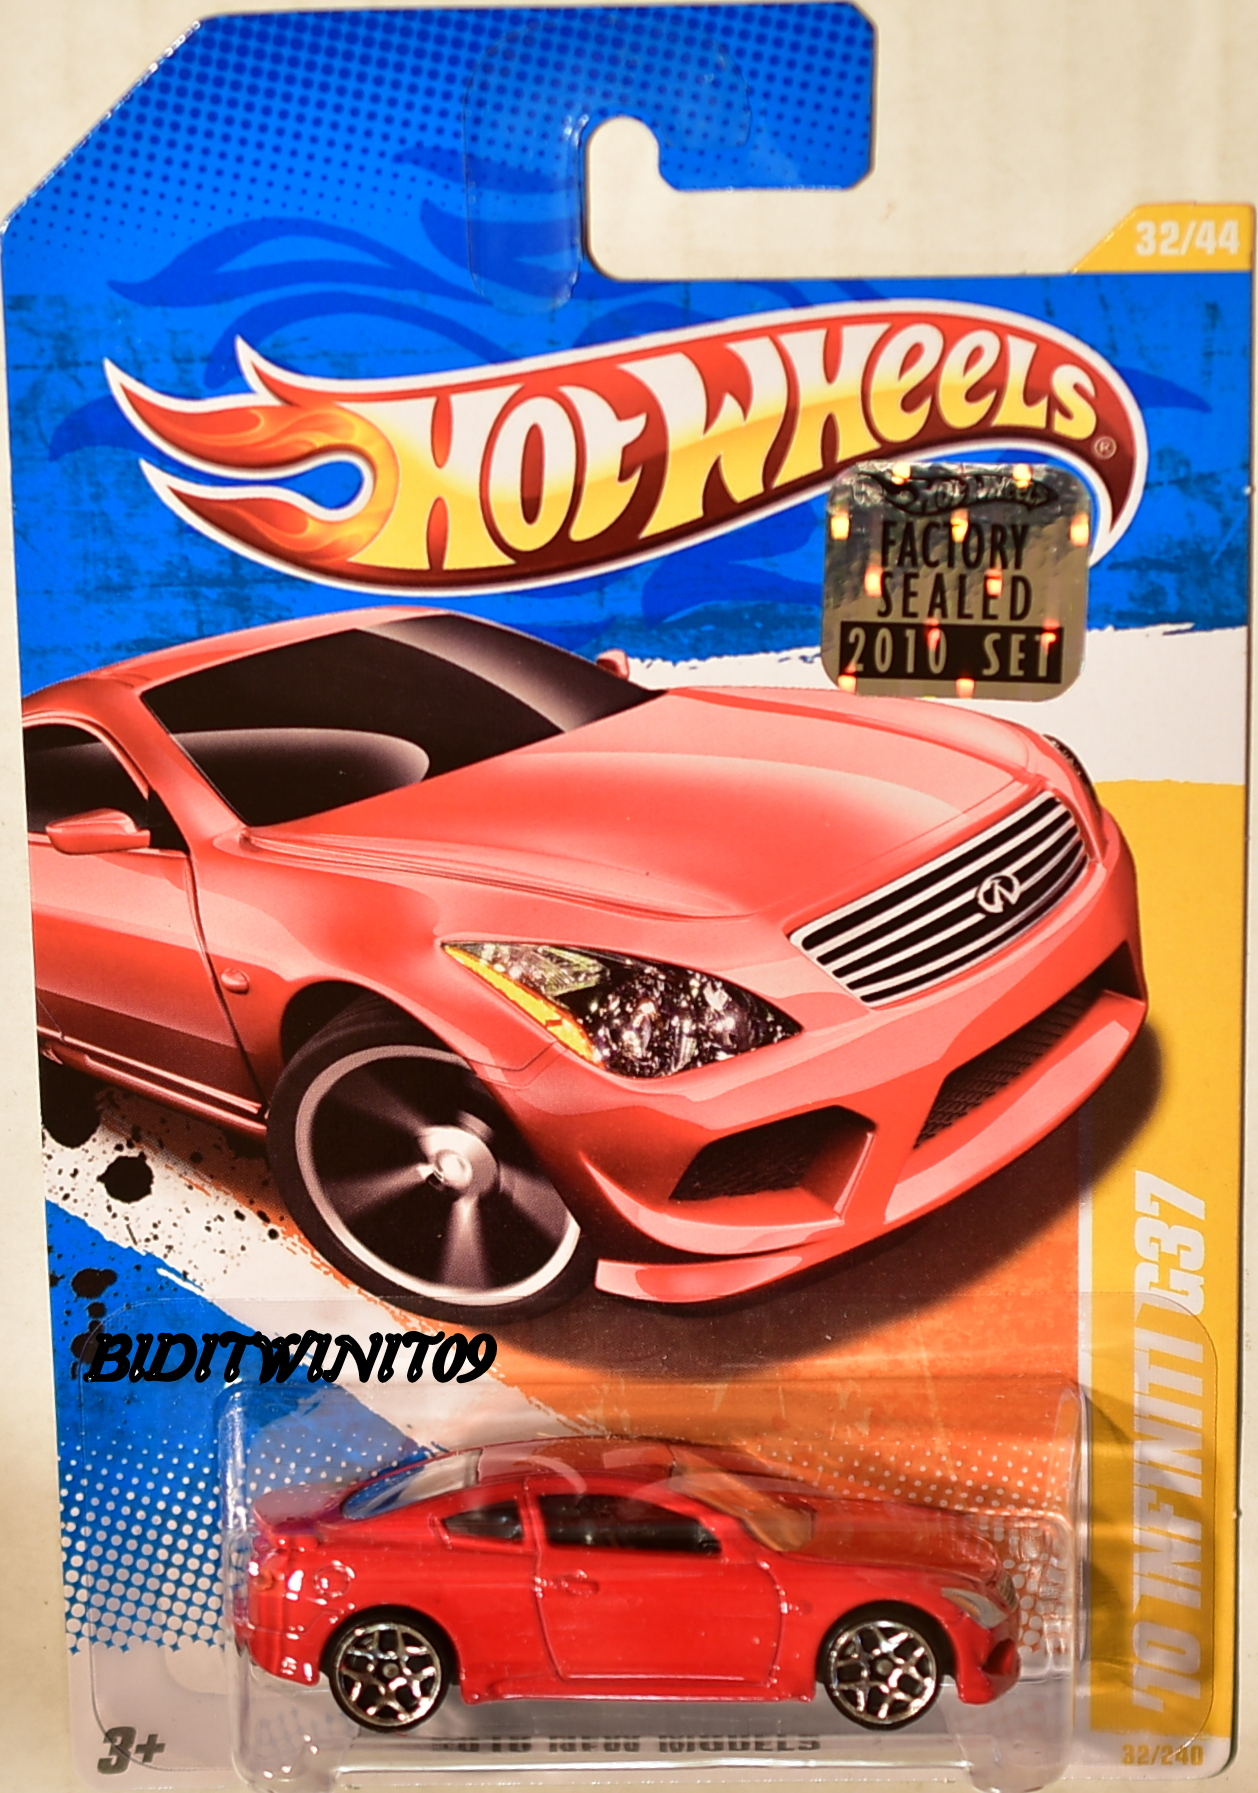 HOT WHEELS 2010 NEW MODELS '10 INFINITI G37 #32/44 RED FACTORY SEALED E+